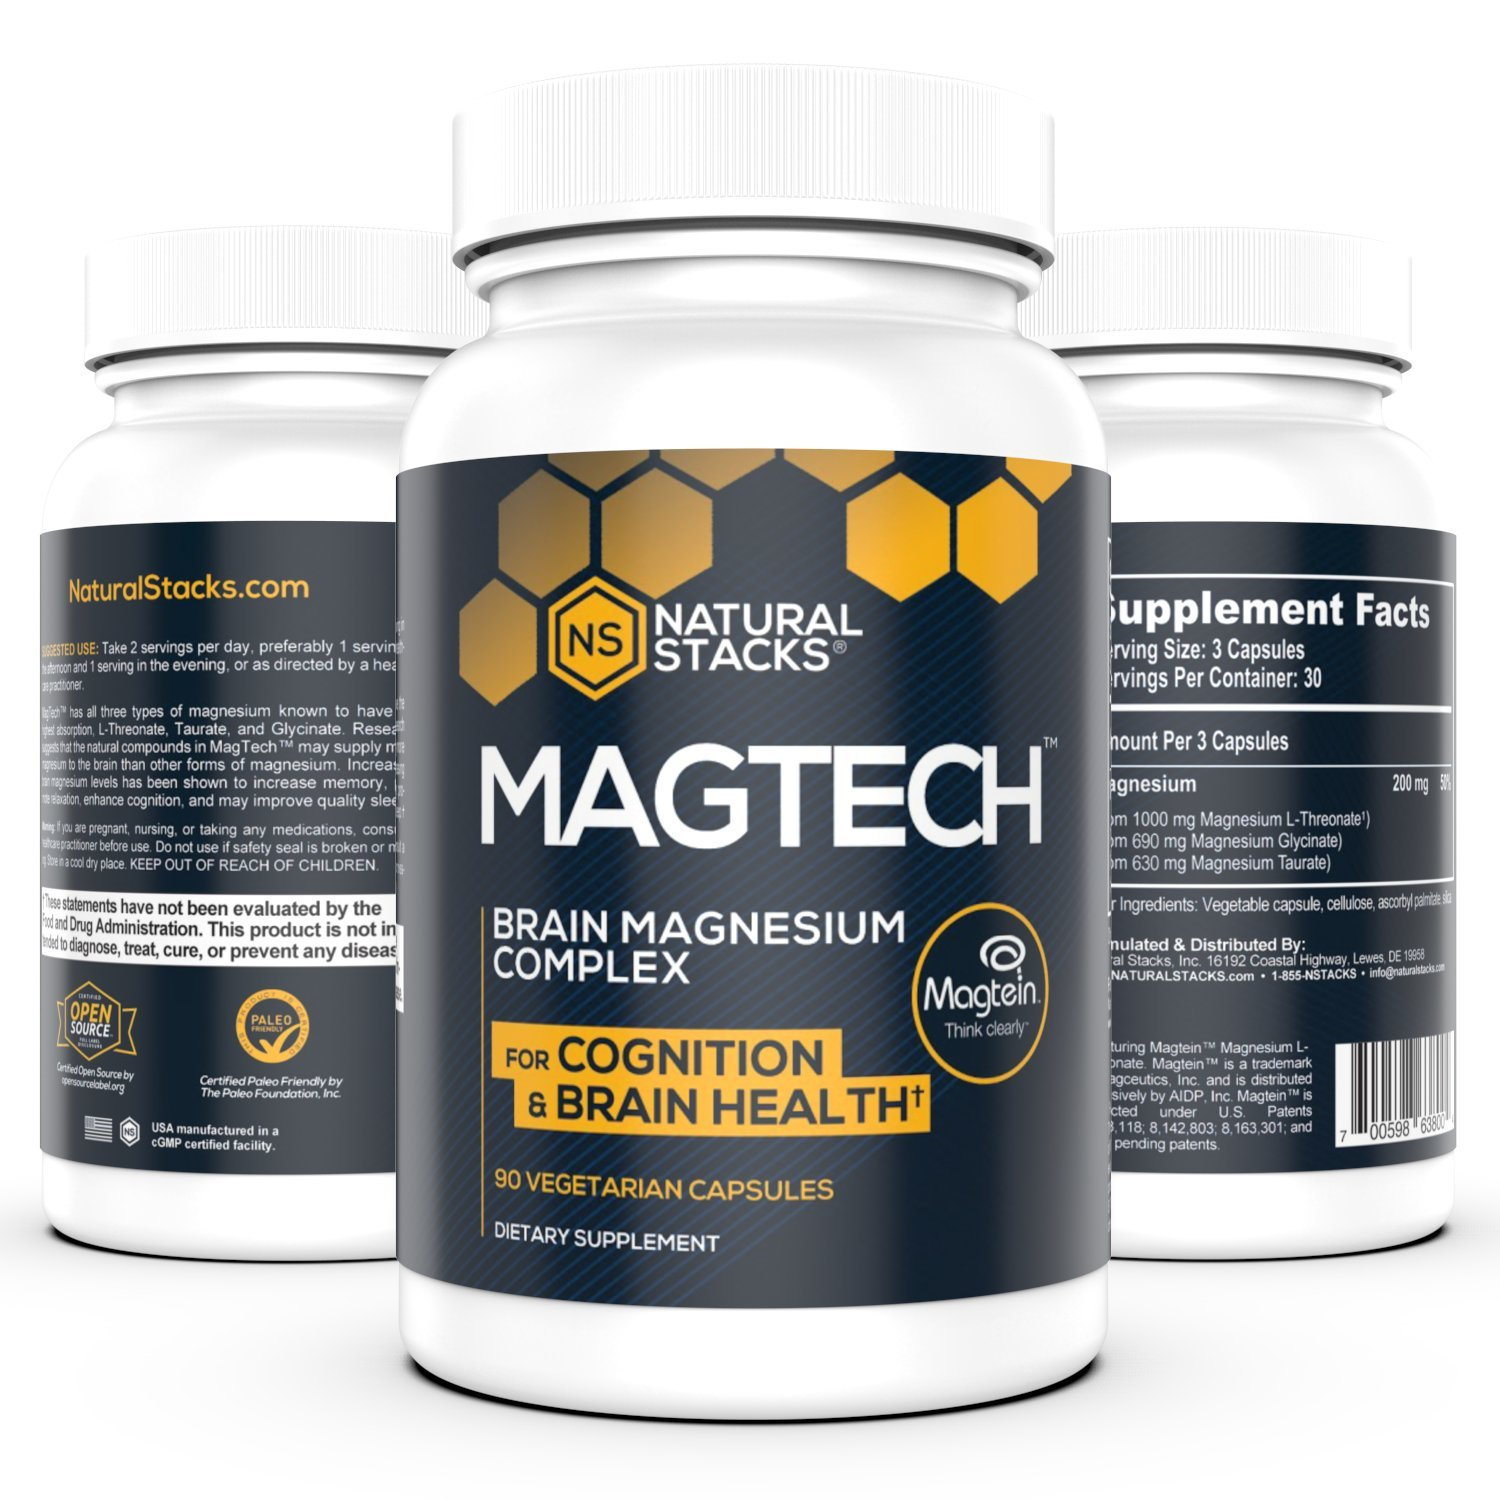 Natural Stacks' MagTech Magnesium Complex (90 Capsules) - Promote Brain Health, Improve Cognitive Aging, Help with Sleep Support - Vitamin and Dietary Supplement